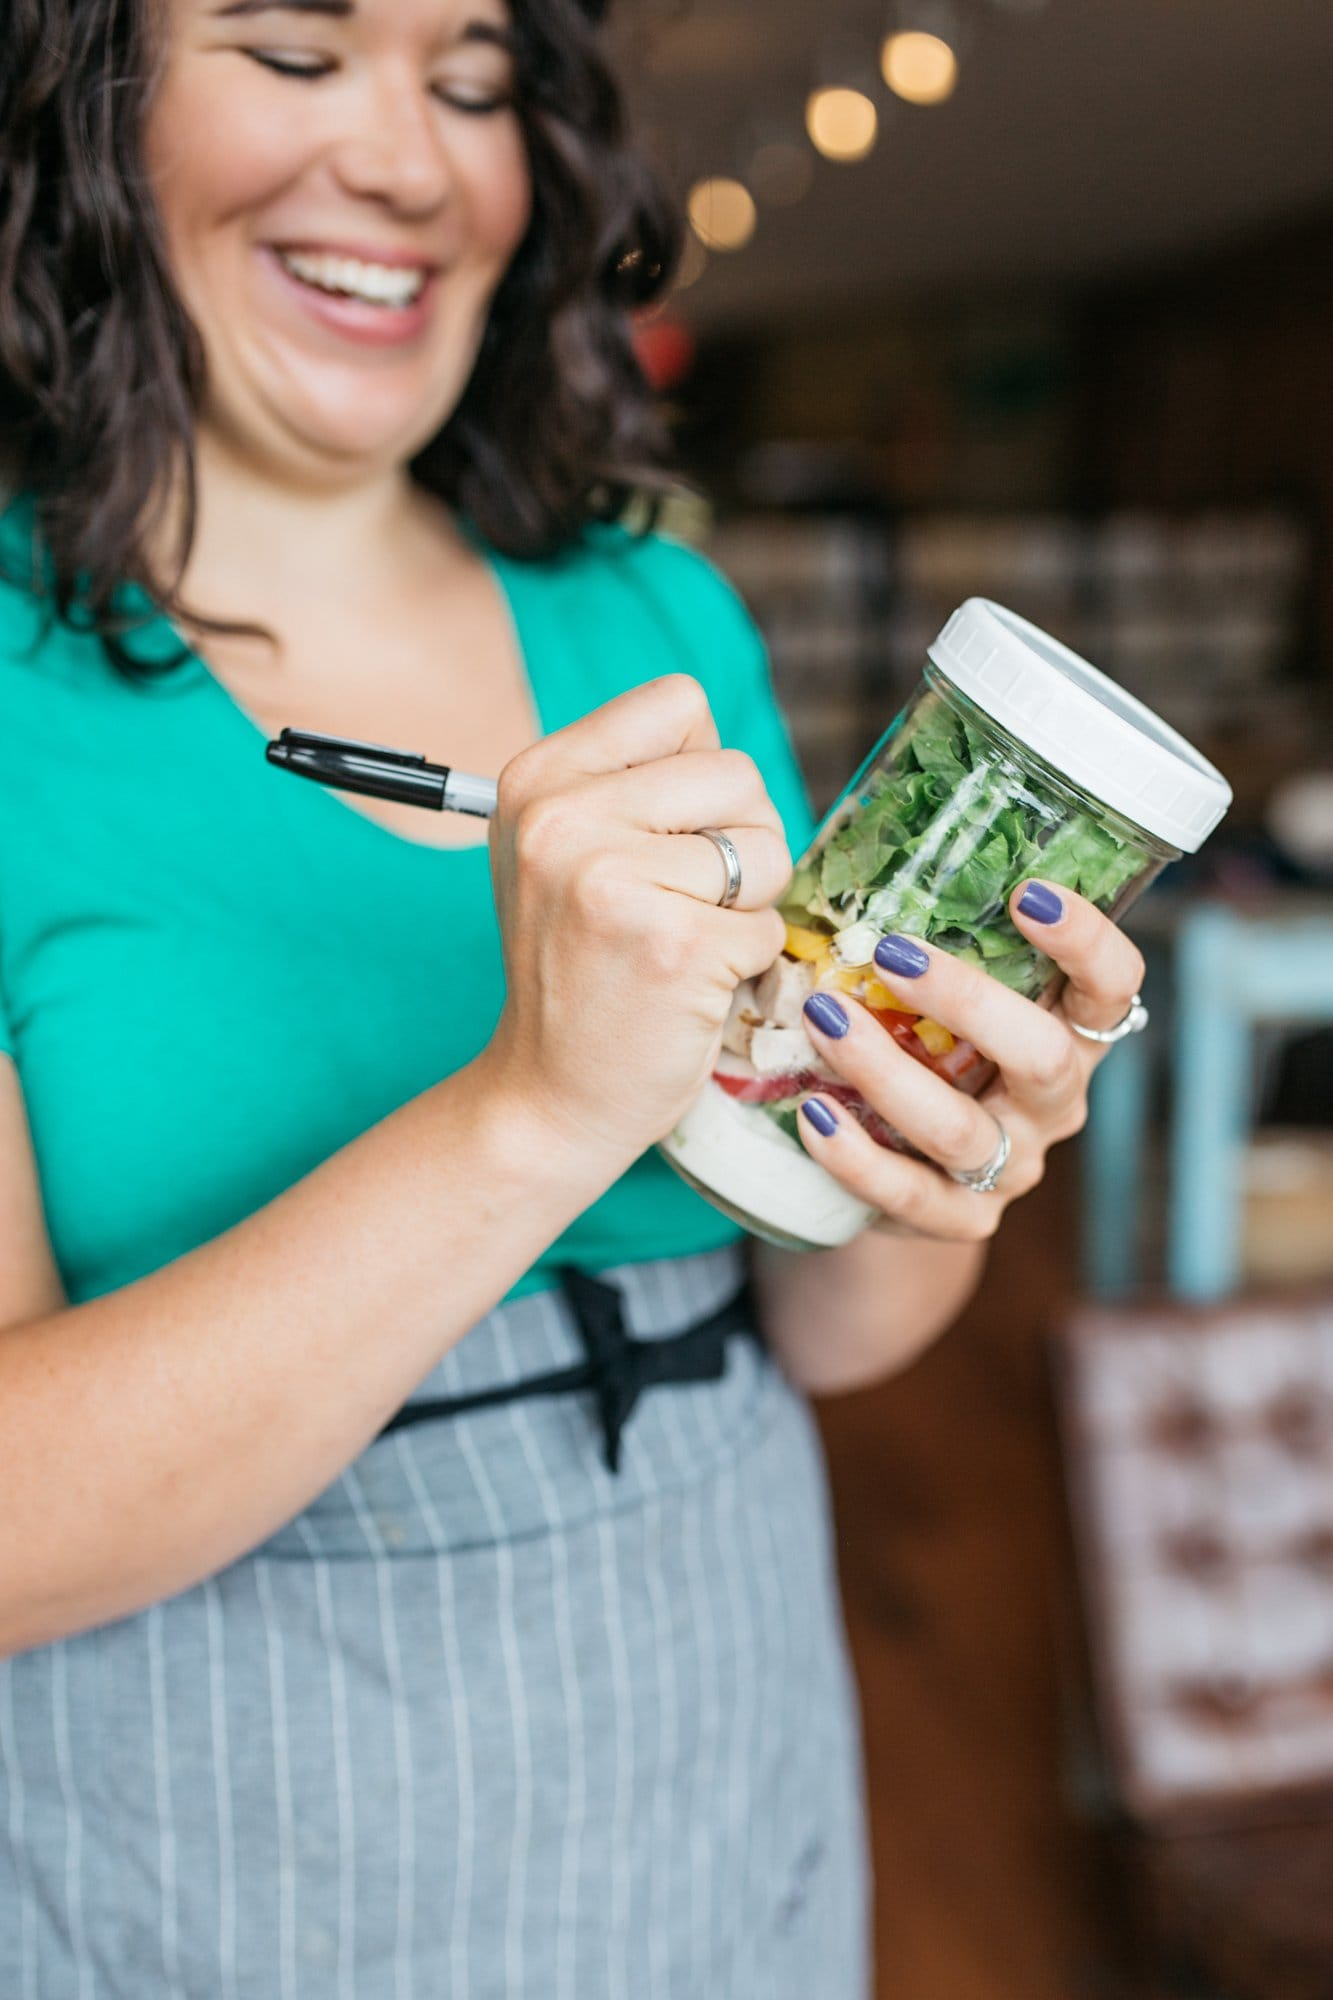 Woman in a teal shirt using a Sharpie to label a glass jar filled with salad in a jar.